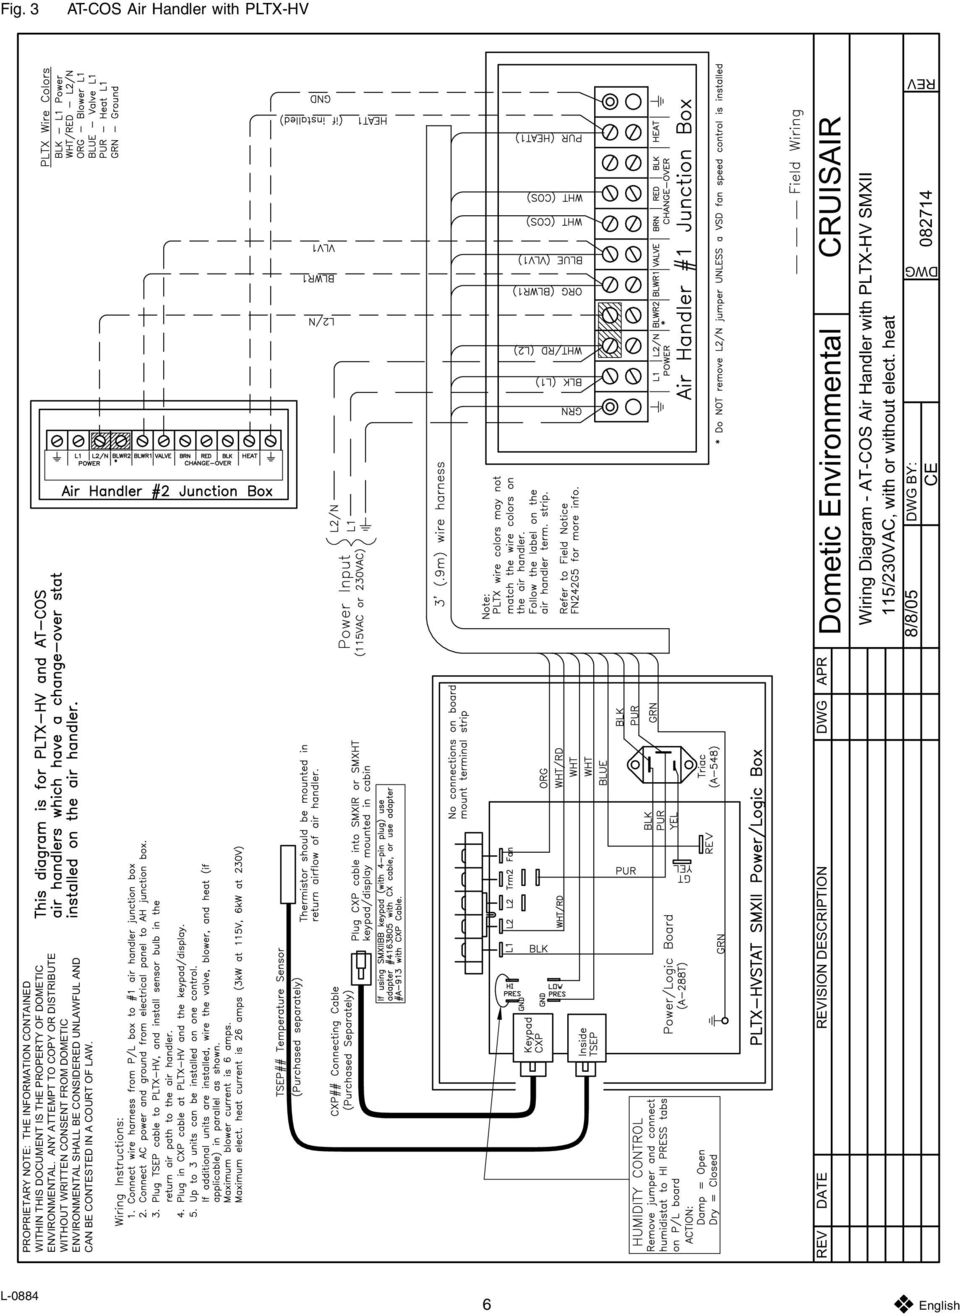 Honeywell Eim Wiring Diagram Honeywell HVAC Logos Wiring